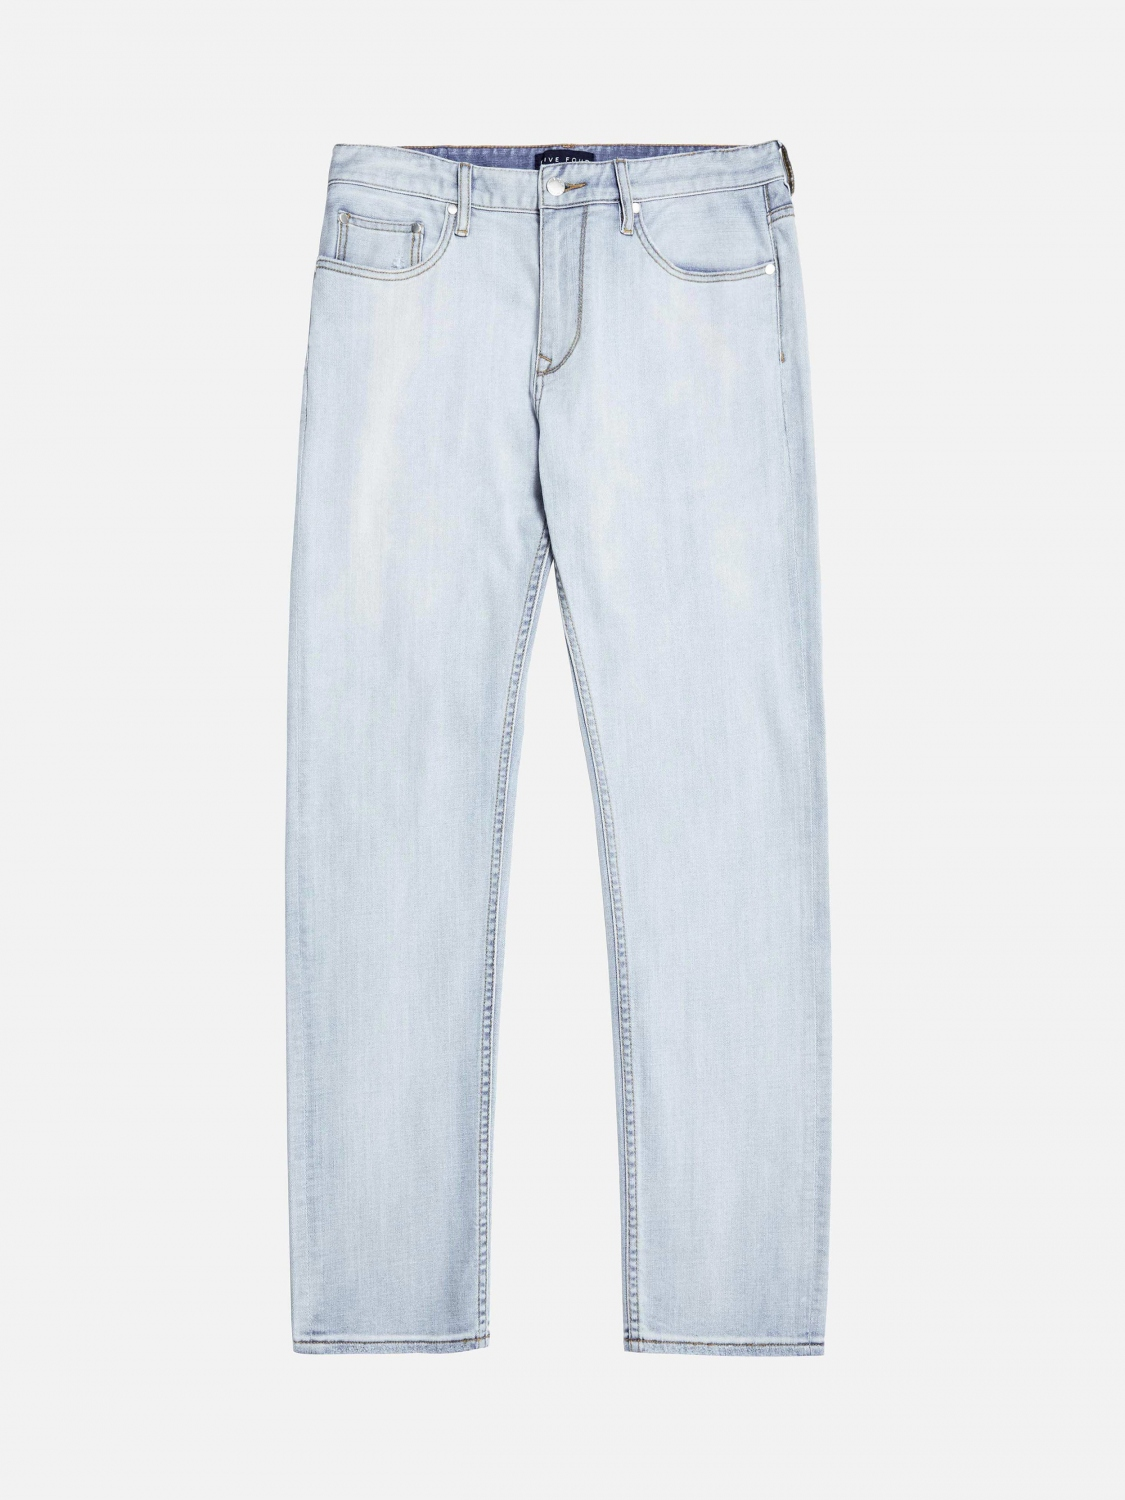 colby original straight jean - blue